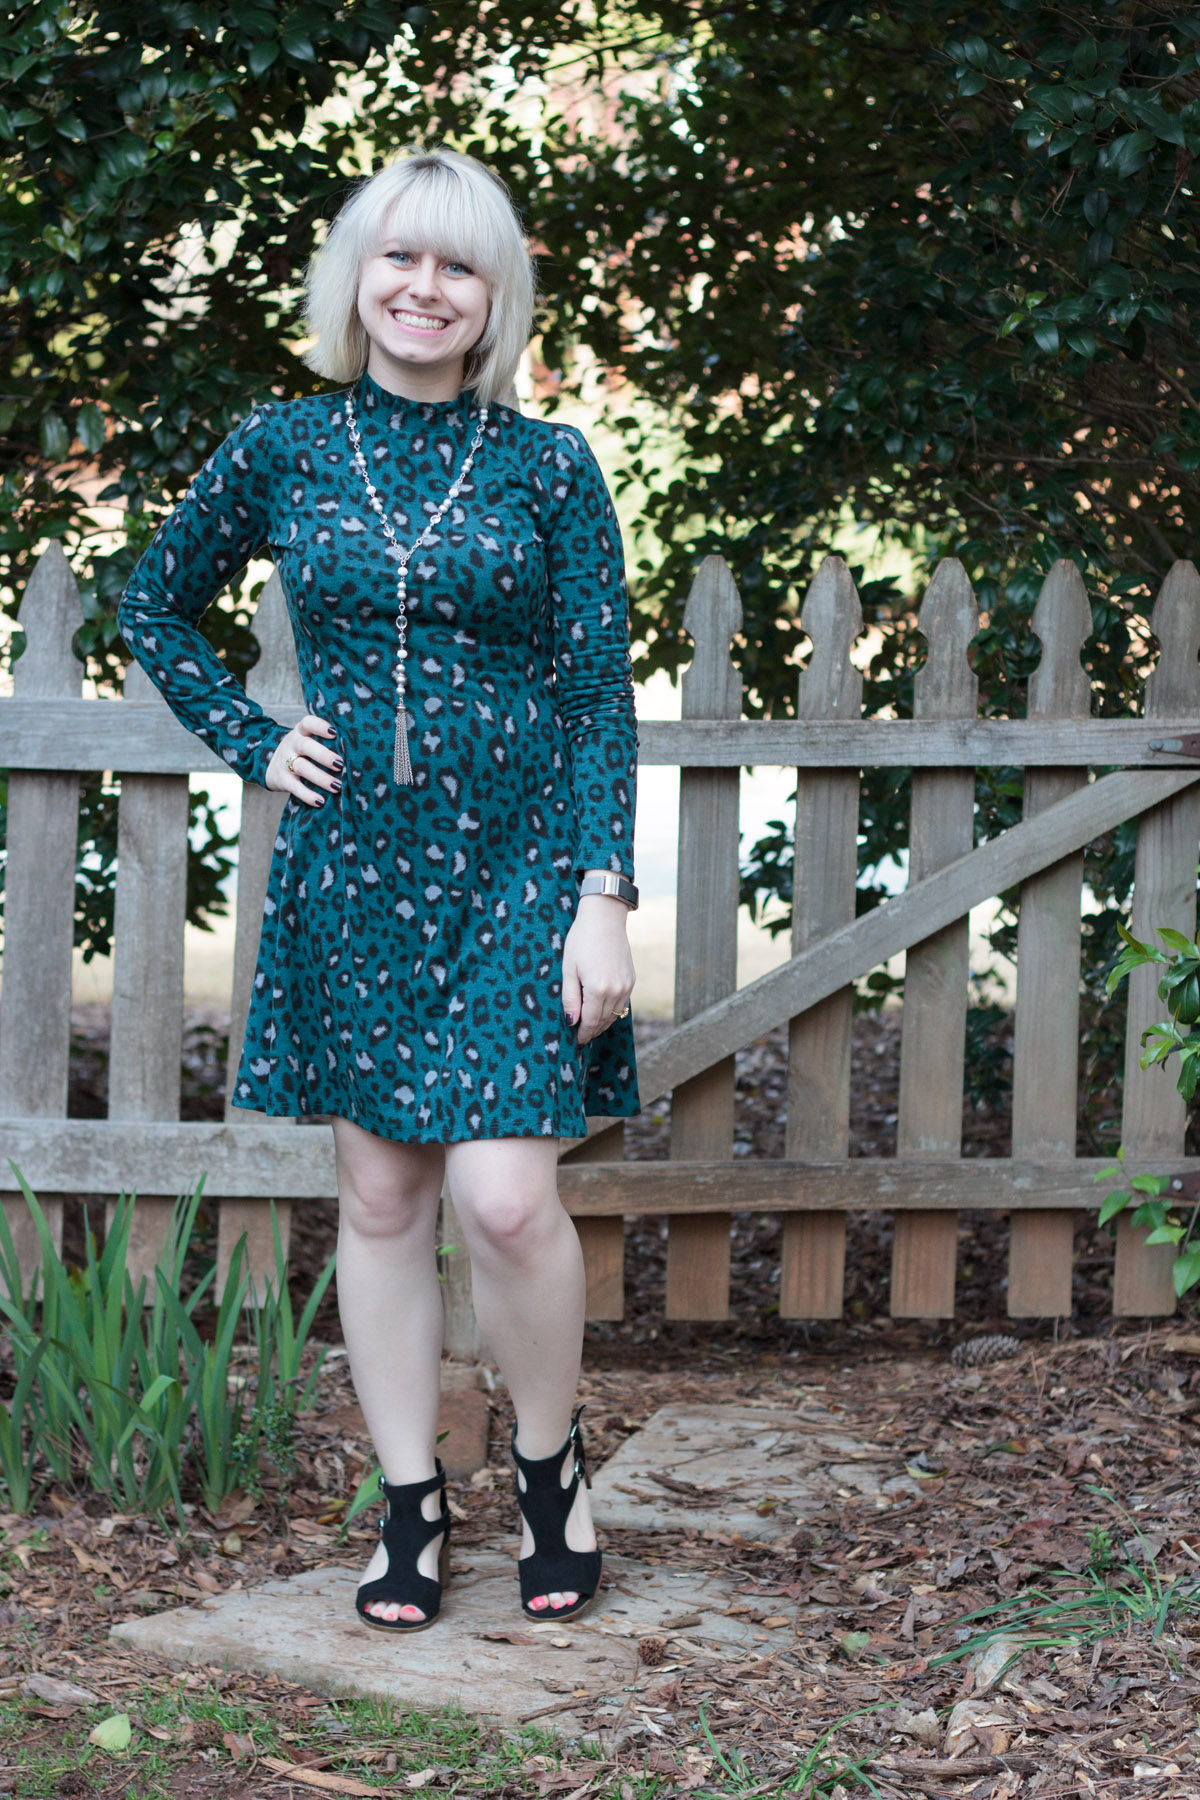 Teal Leopard Mock Turtleneck Dress, Silver Tassel Necklace, Blonde Hair, and Modern Black Block Sandals